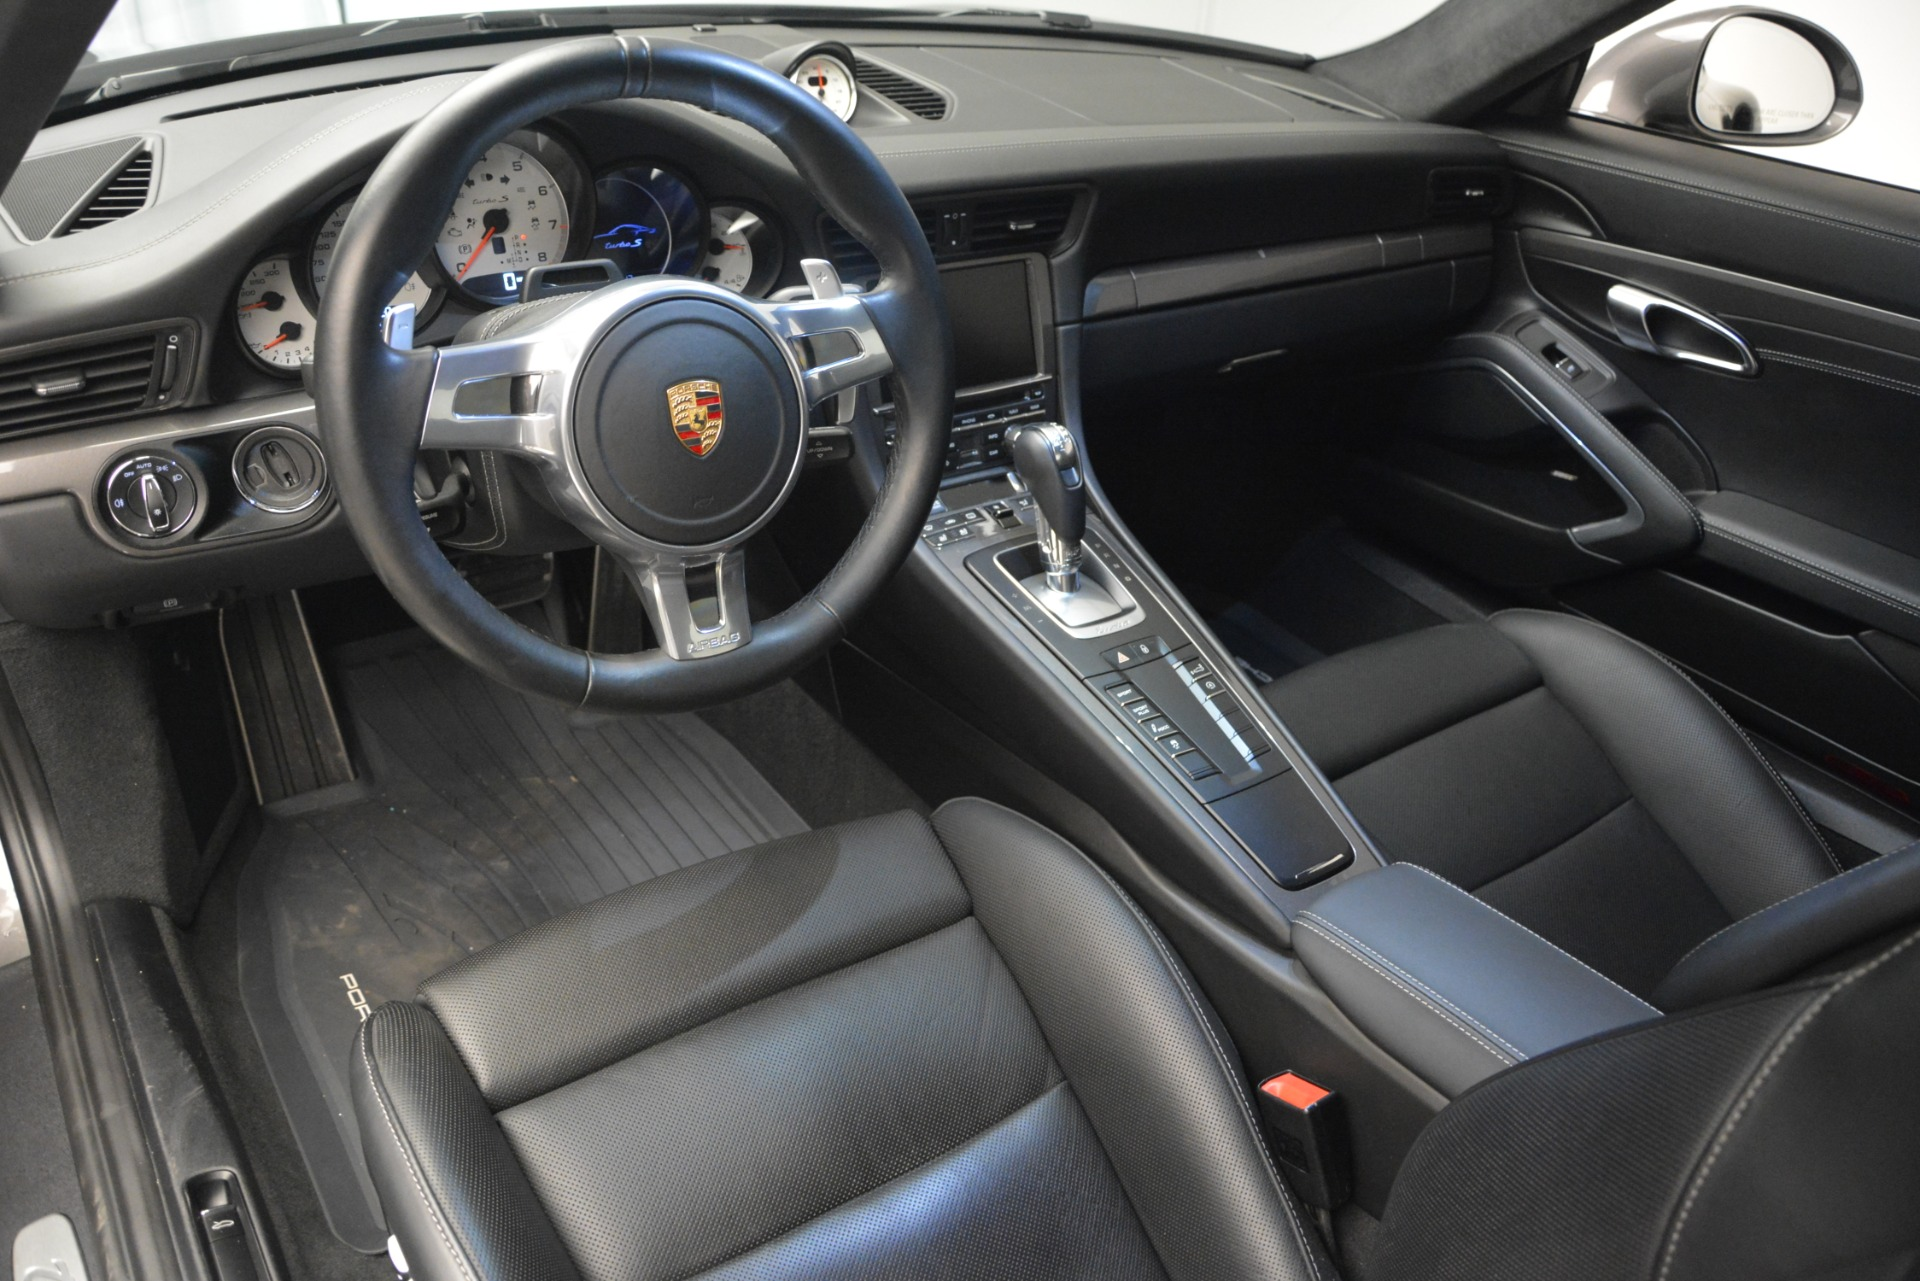 Used 2015 Porsche 911 Turbo S For Sale In Greenwich, CT 2923_p14